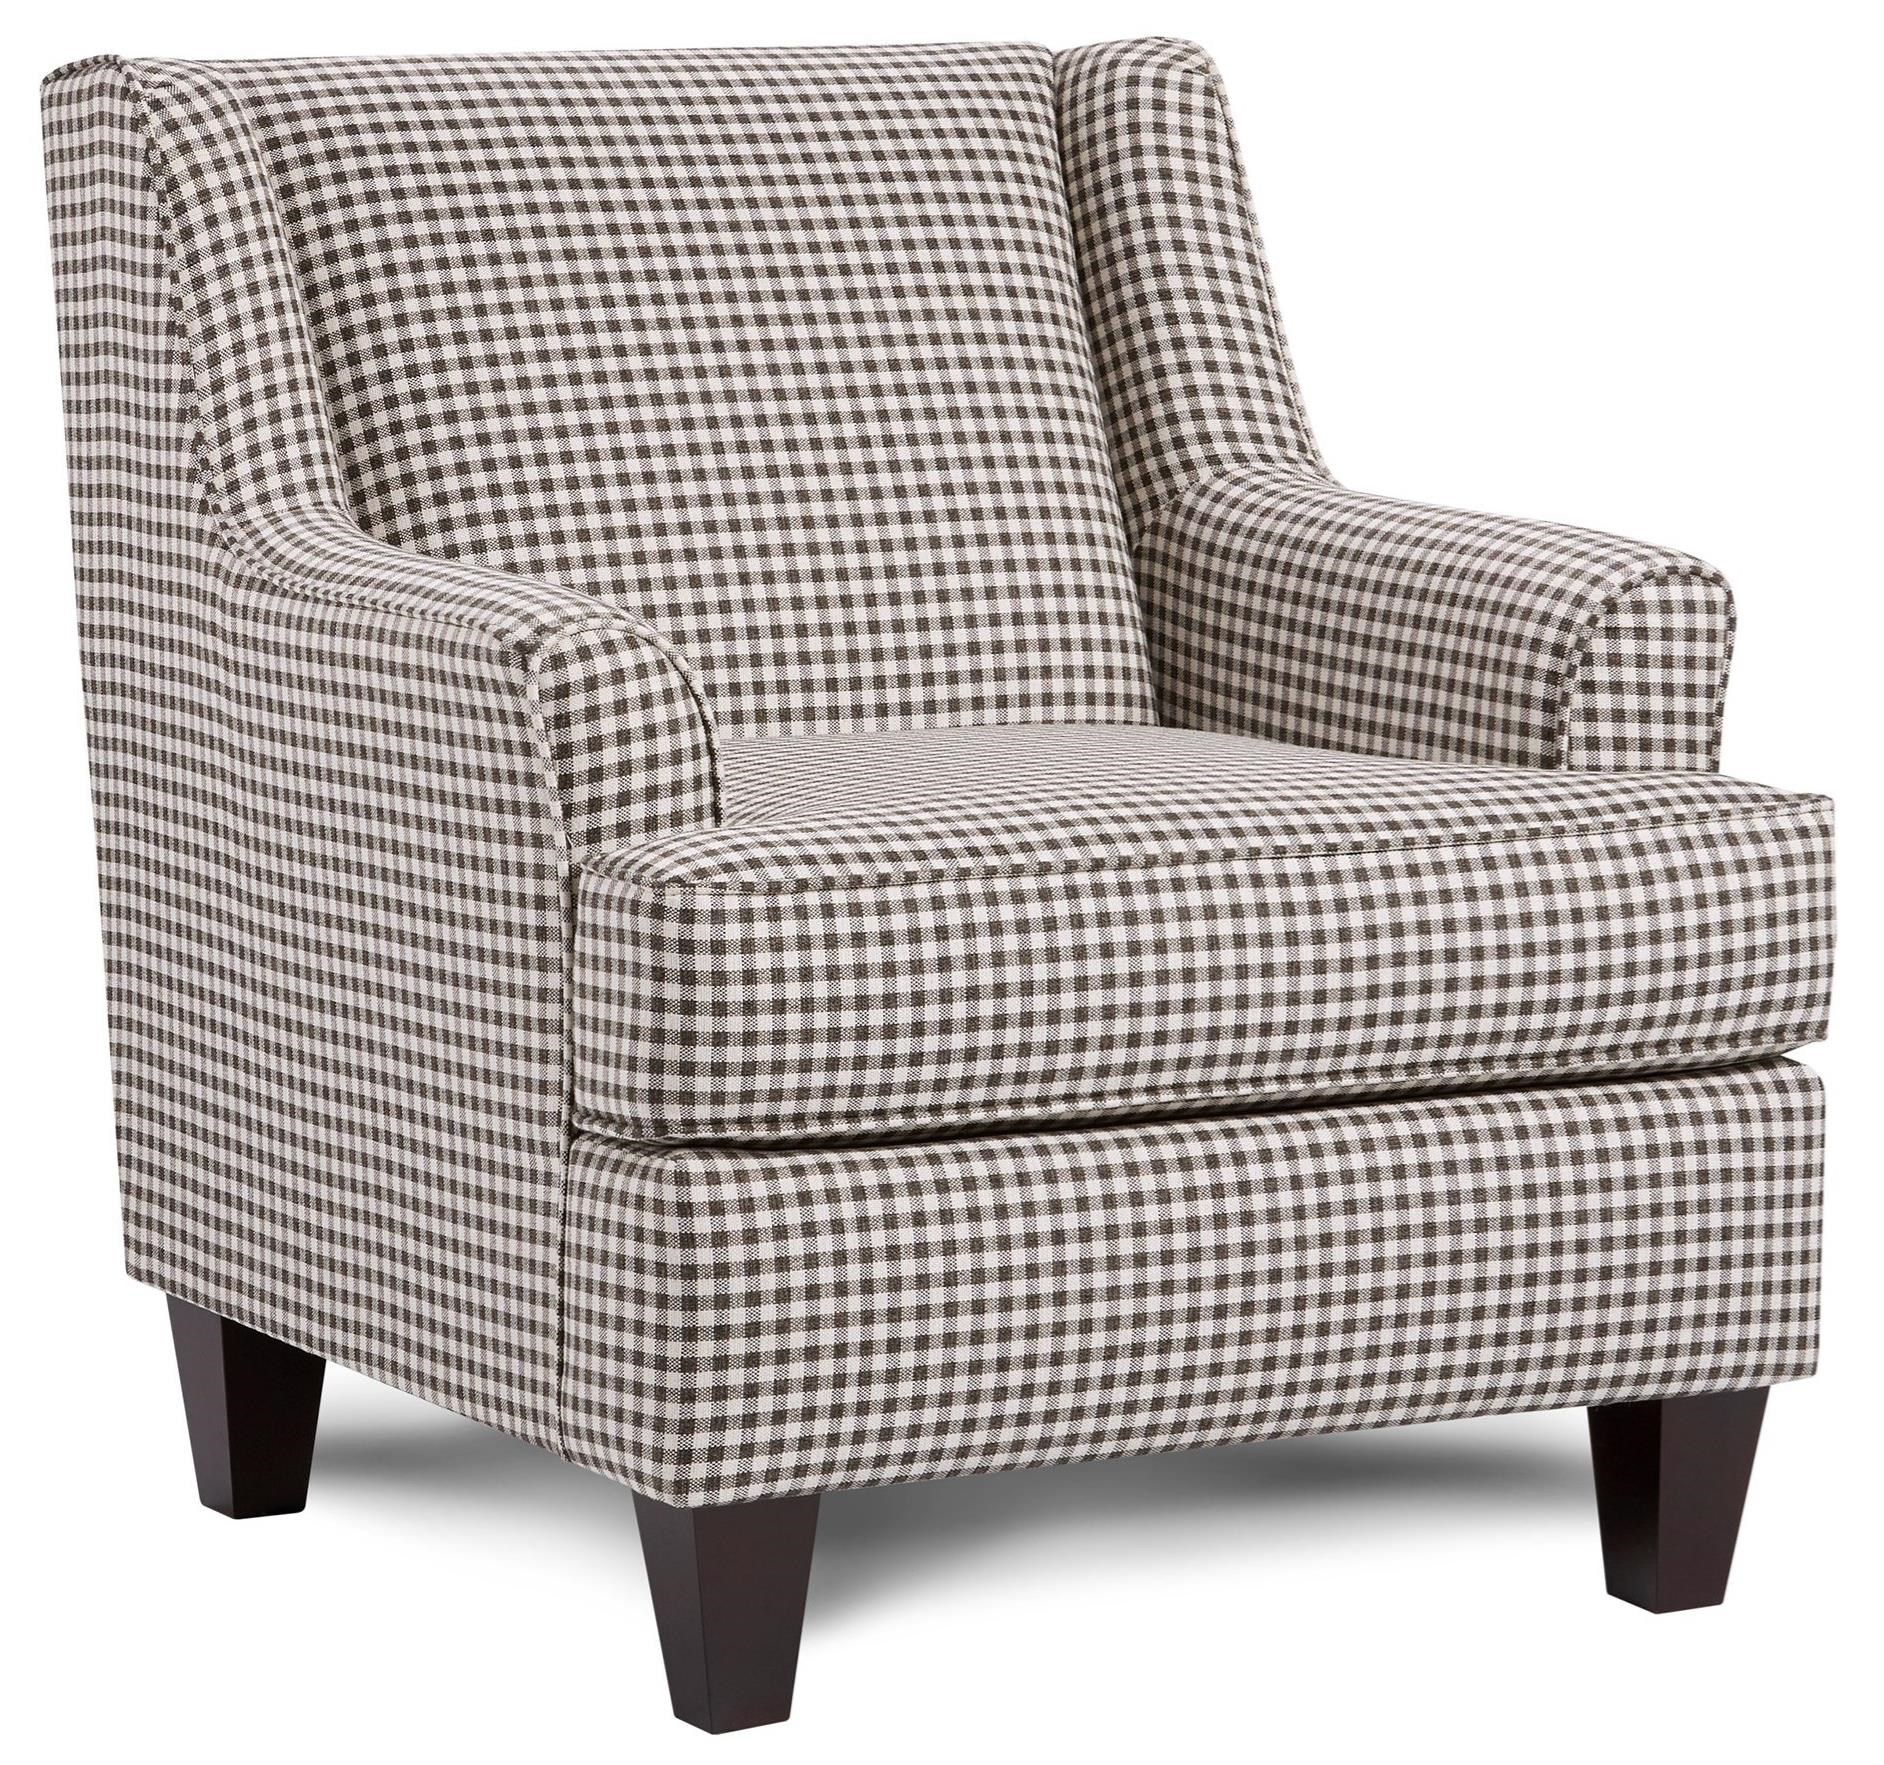 340 Upholstered Chair by Fusion Furniture at Furniture Superstore - Rochester, MN